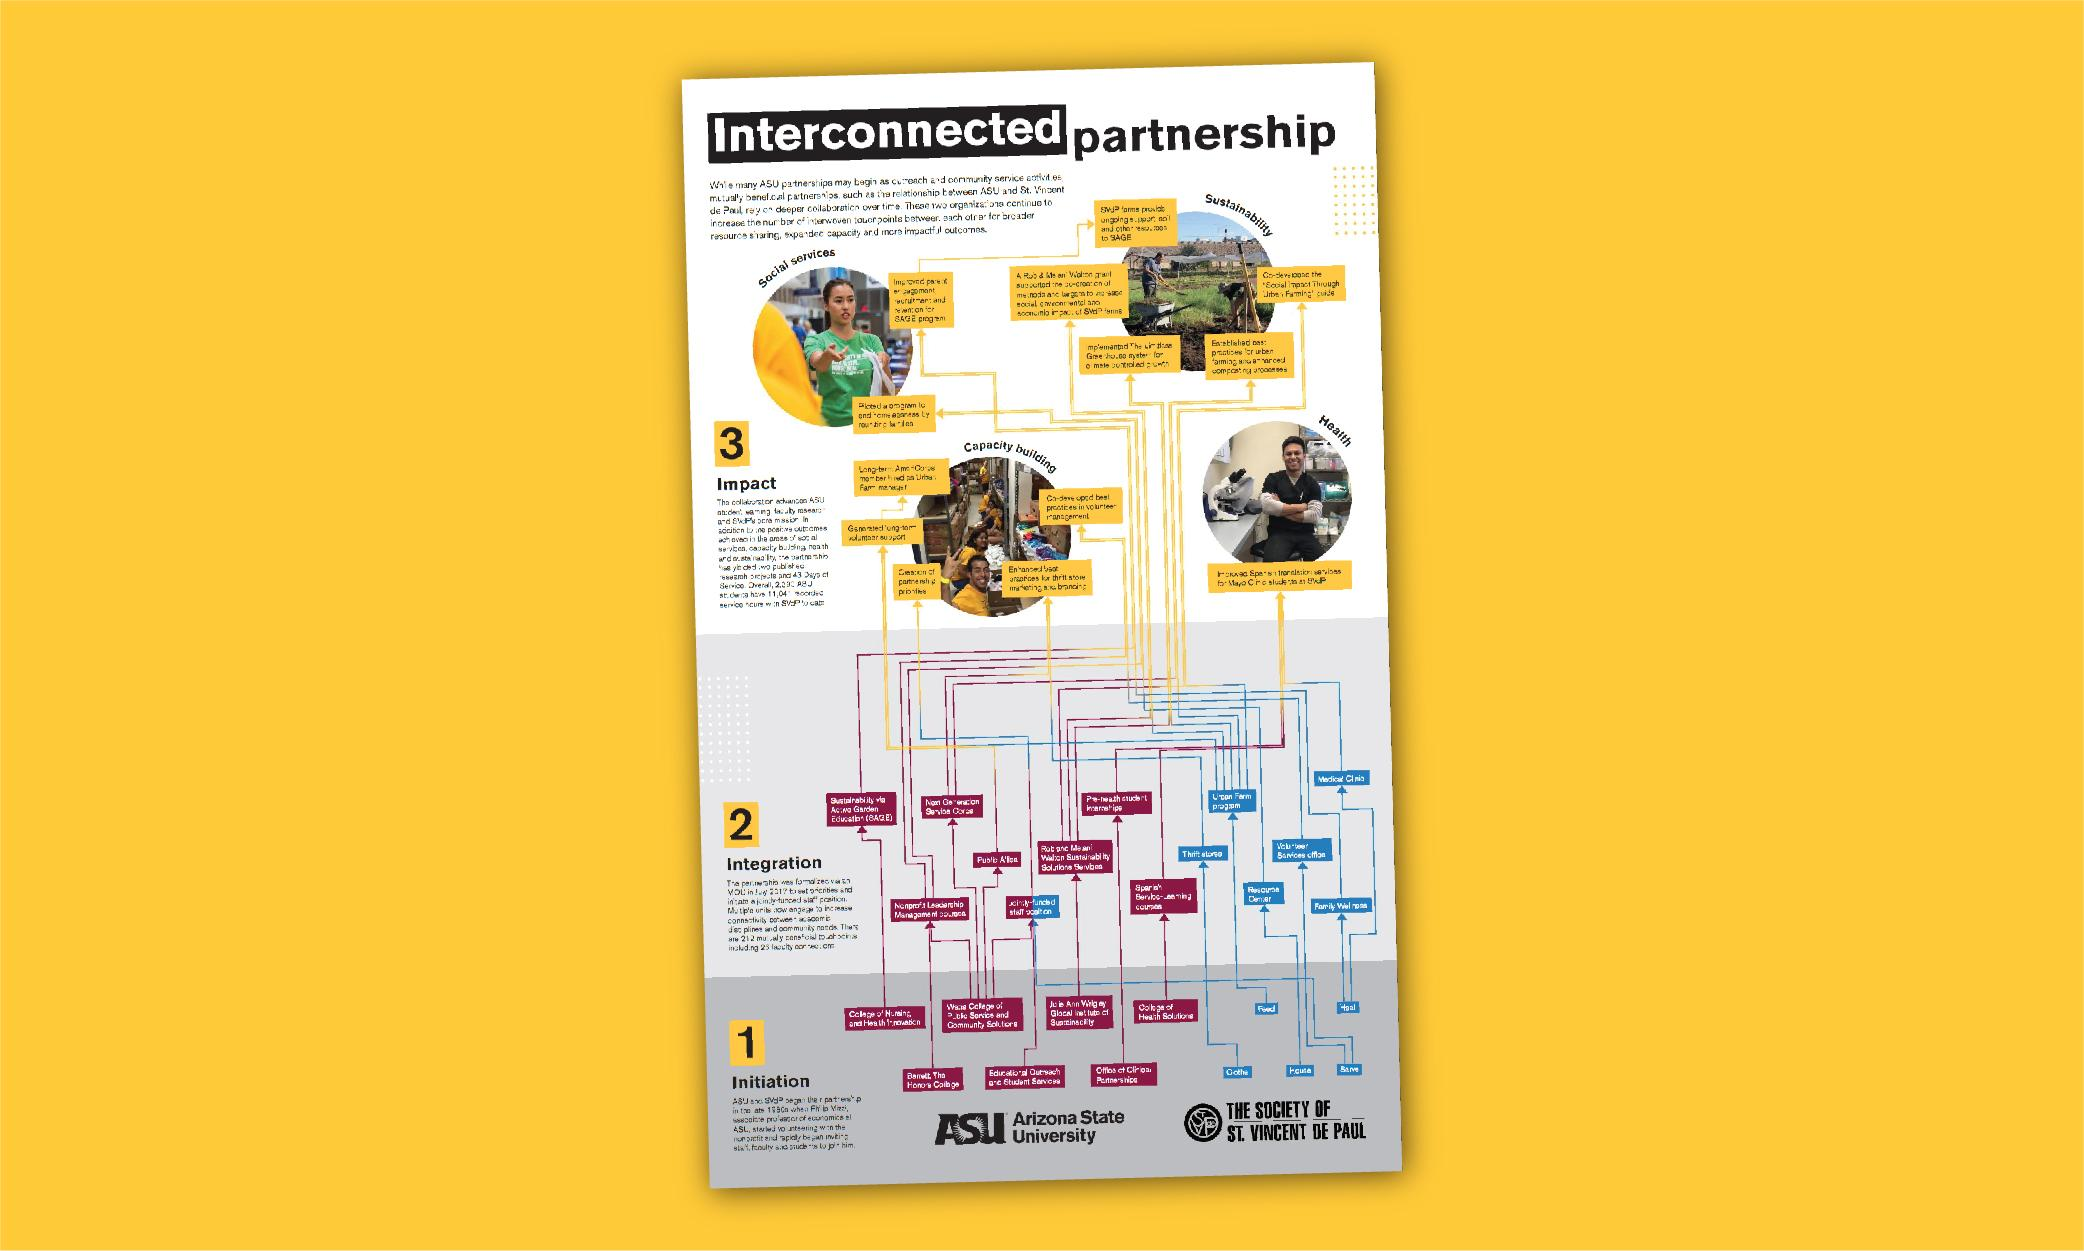 Interconnected Partnership